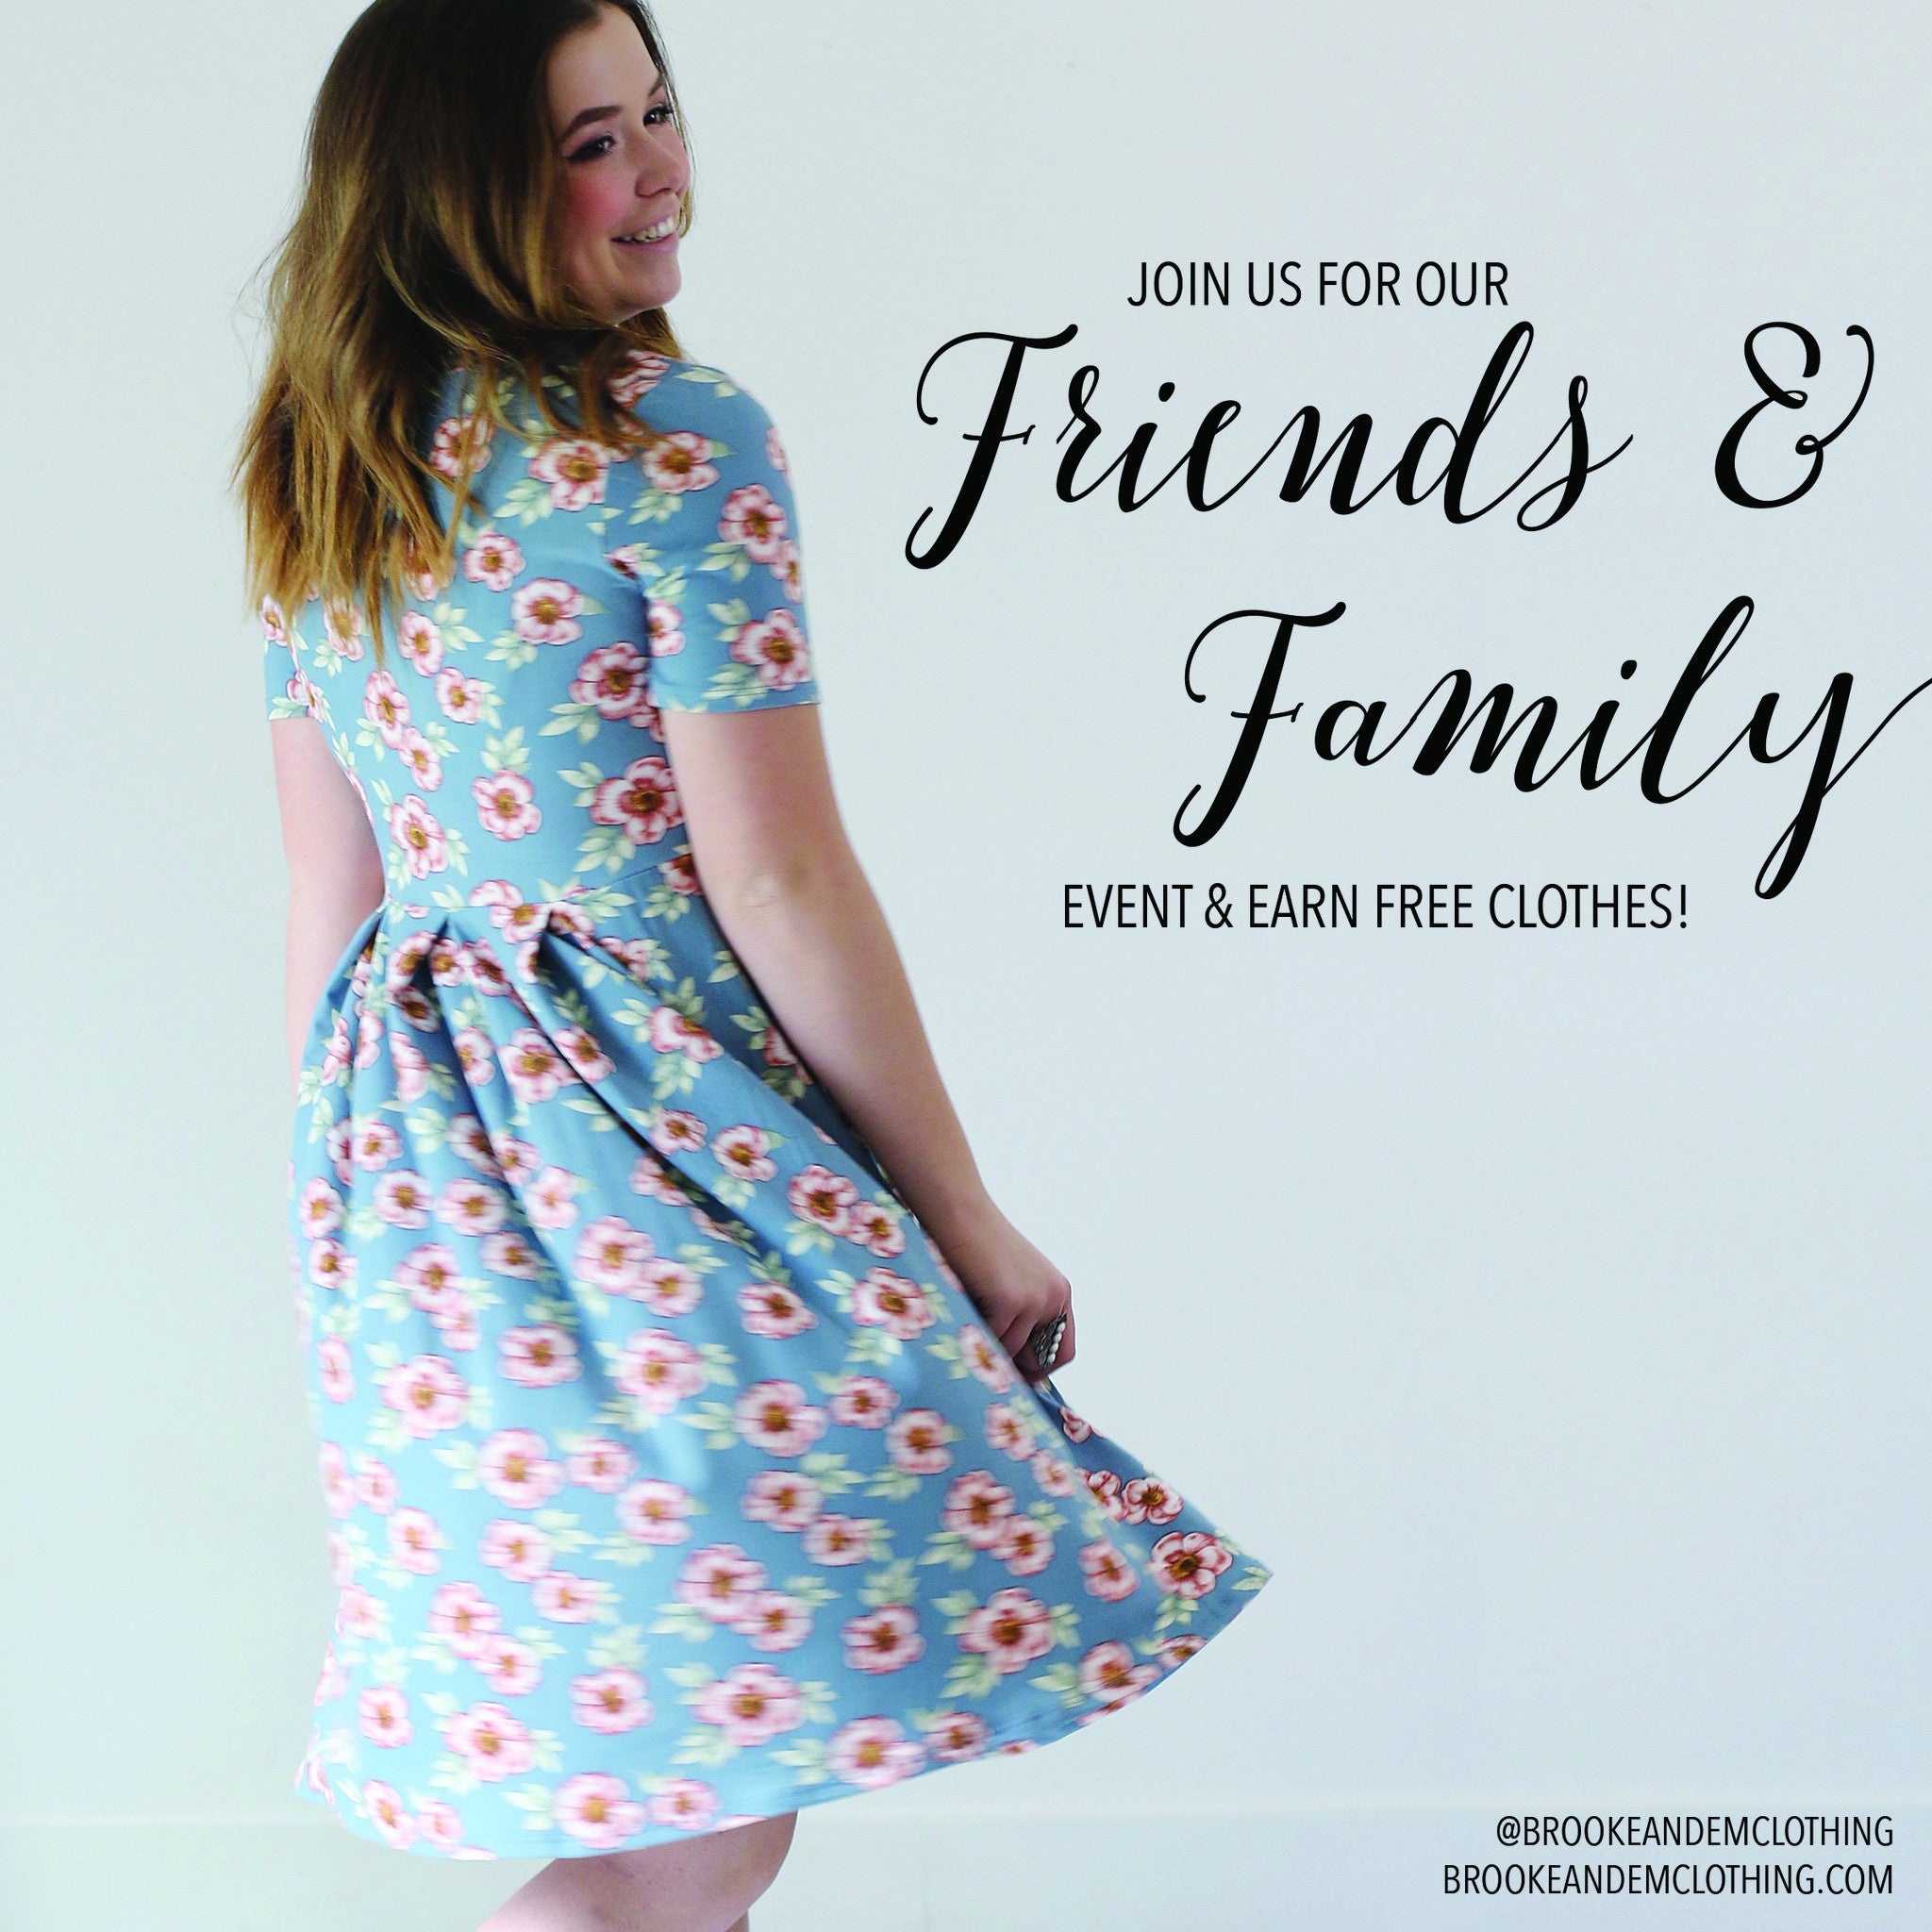 Friends & Family Event!